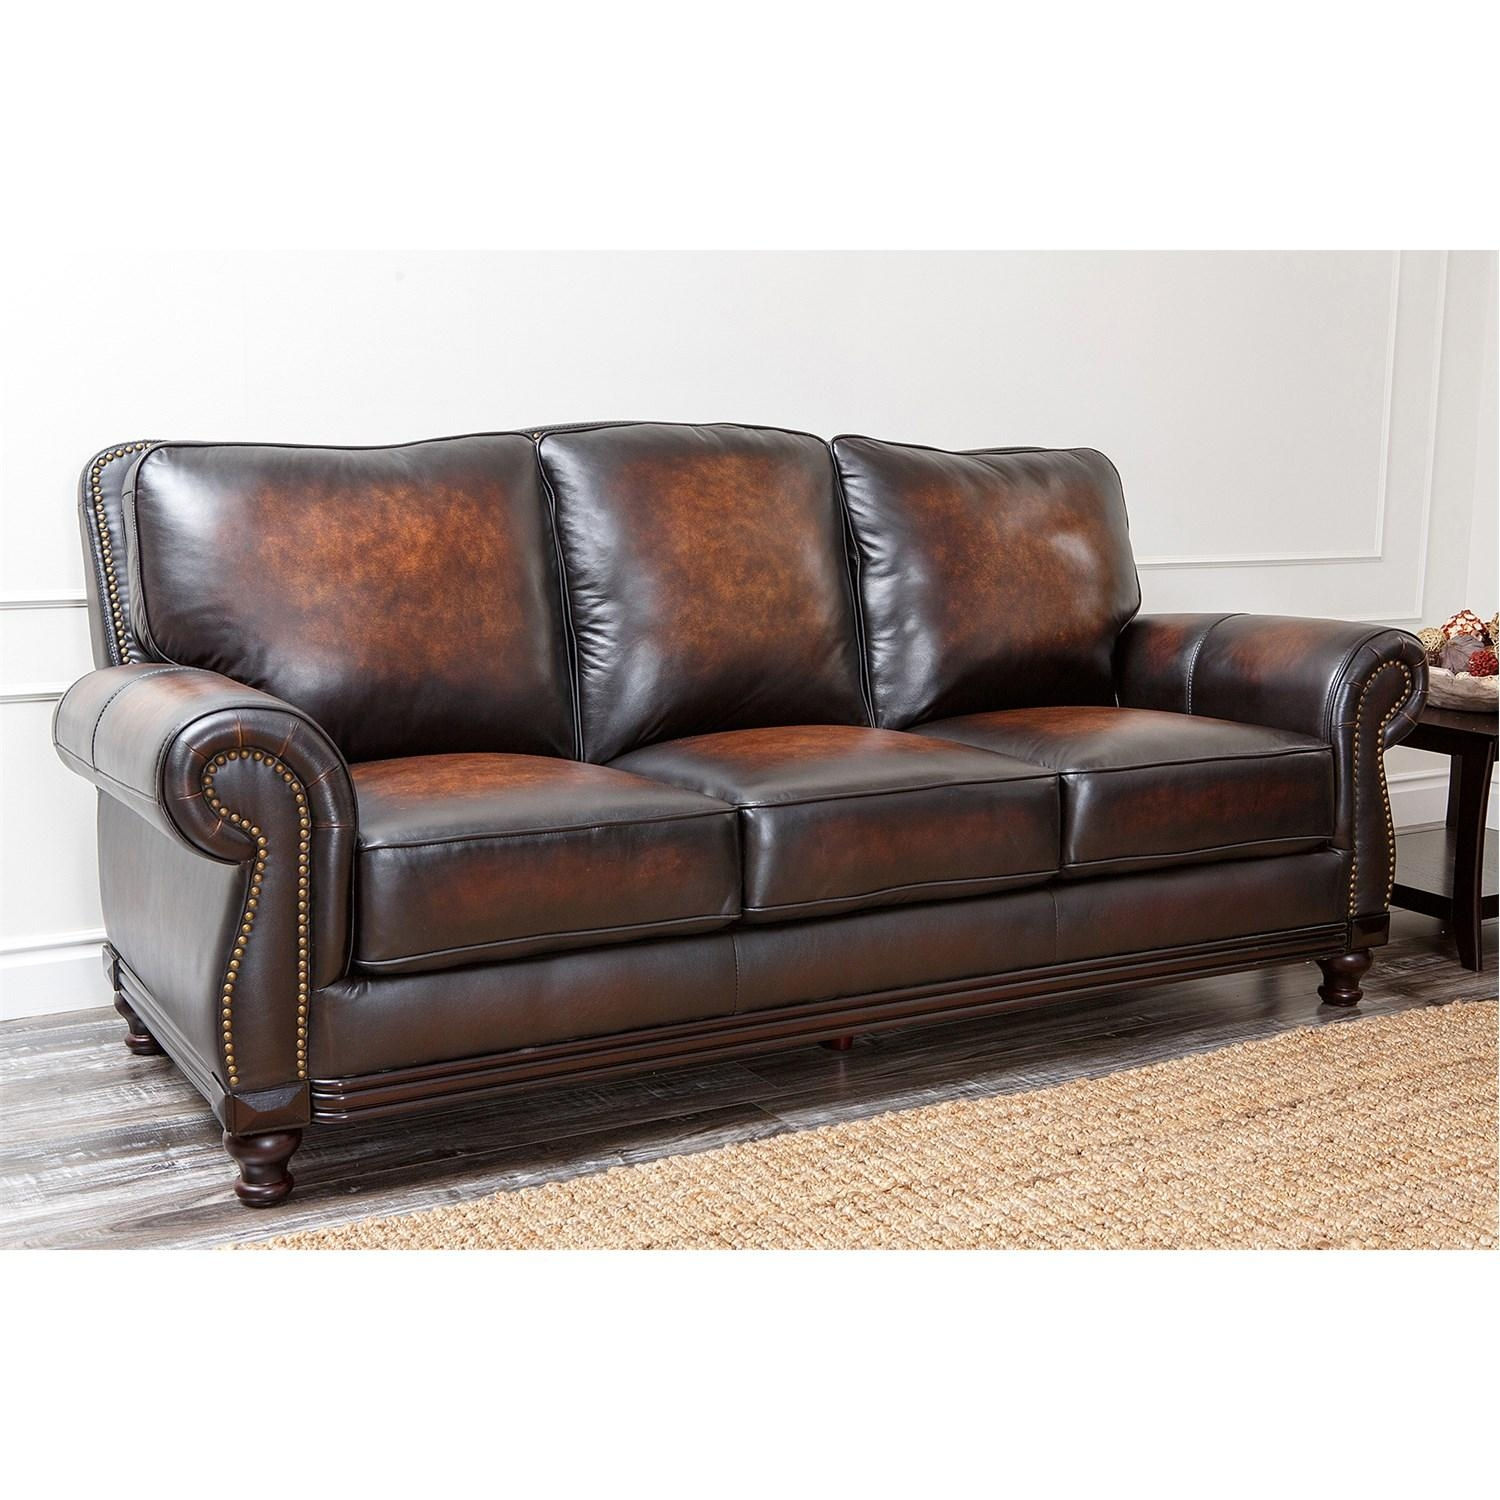 Abbyson Living Ci N180 Brn 3 Barclay Hand Rubbed Leather Sofa With Regard To Abbyson Living Sofas (Image 9 of 20)